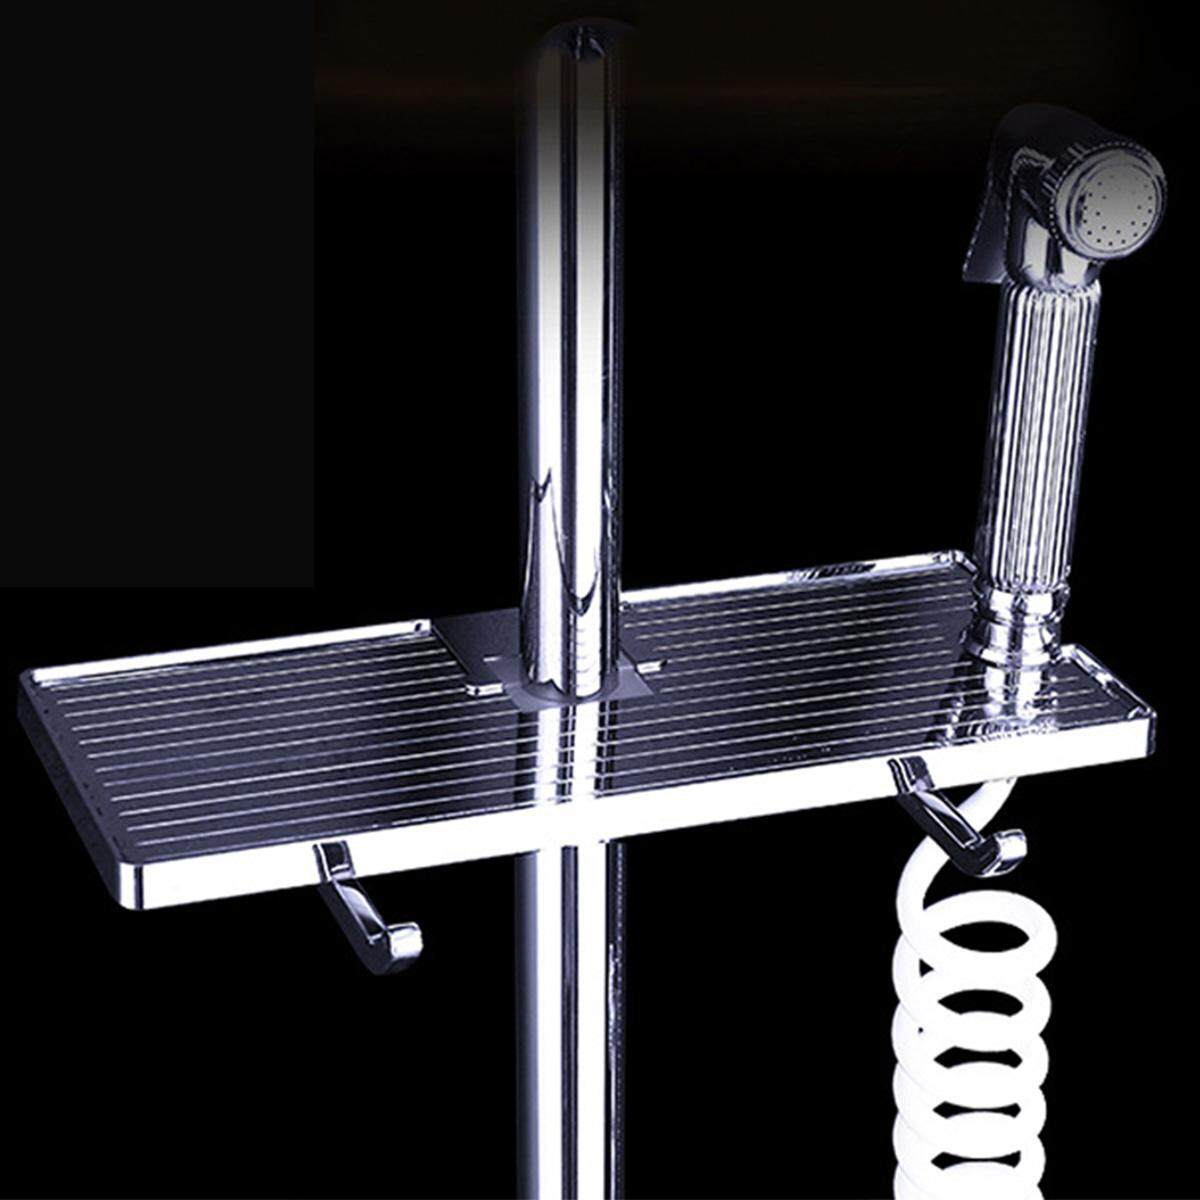 Bathroom Adjustable Bath Pole Rack Shower Caddy Shelf Storage Holder Organizer By Glimmer.